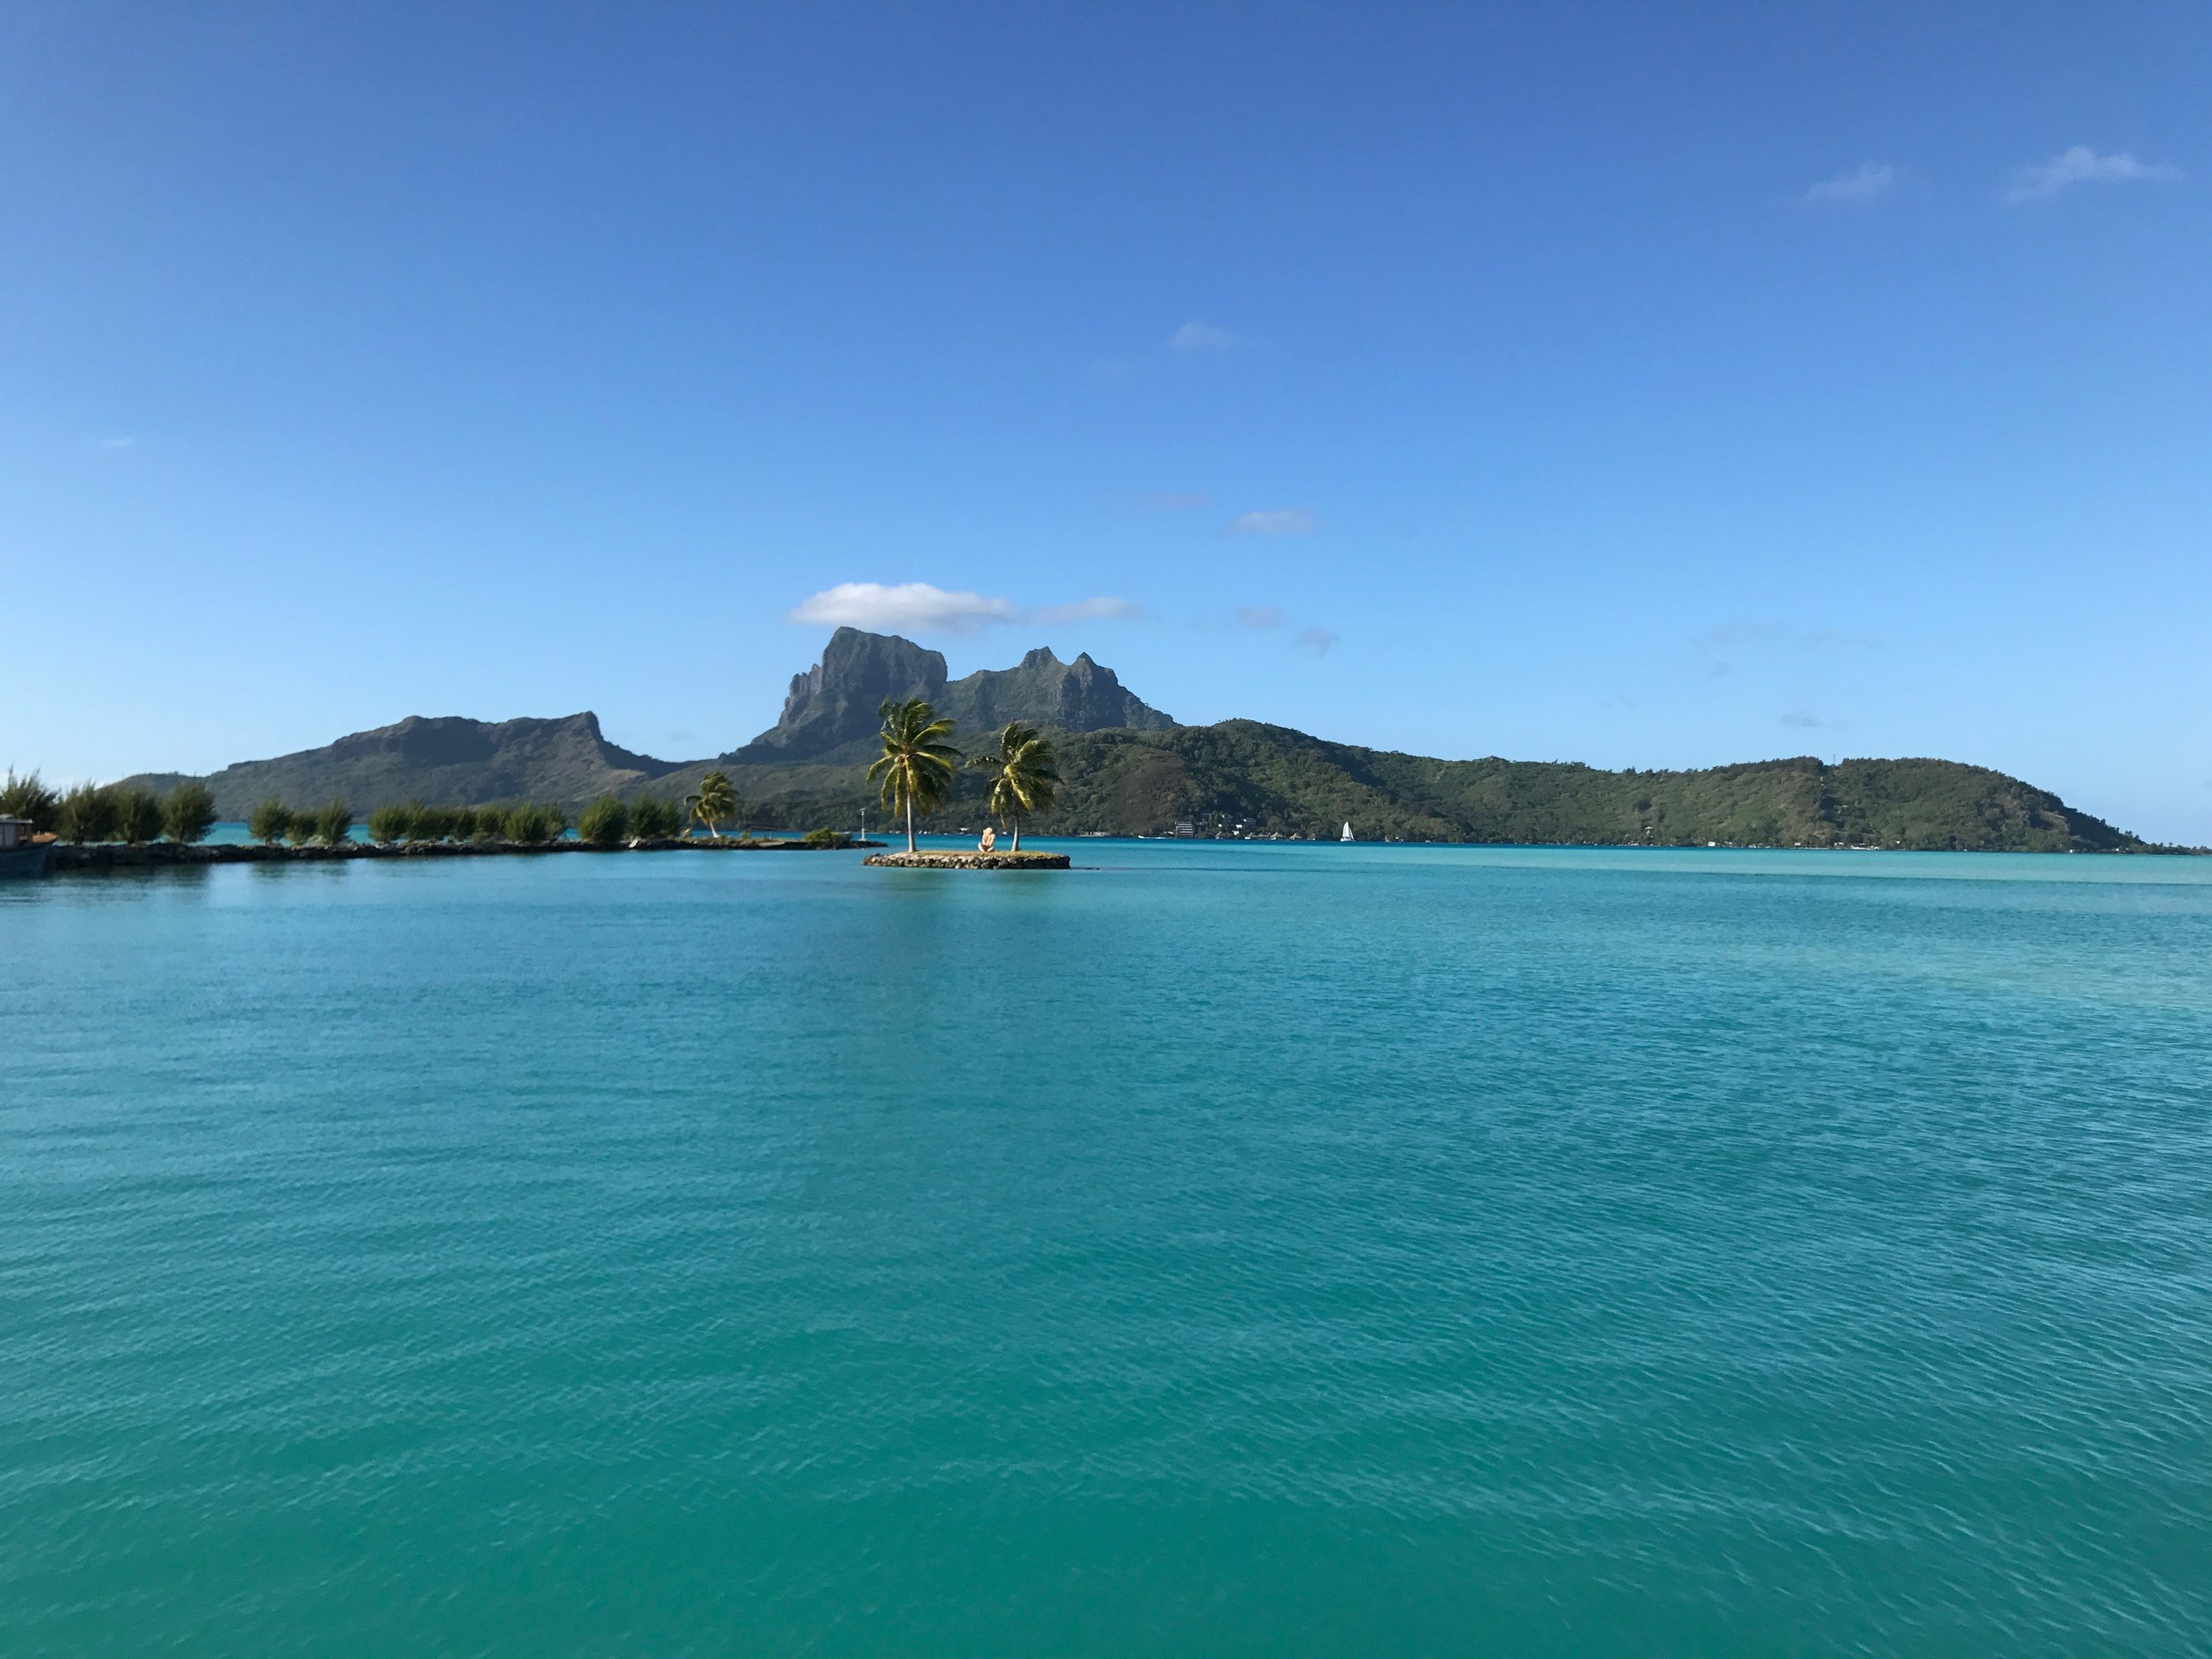 Bora Bora Airport: Take a deep breath, smile and be grateful this slice of a paradise is a reality